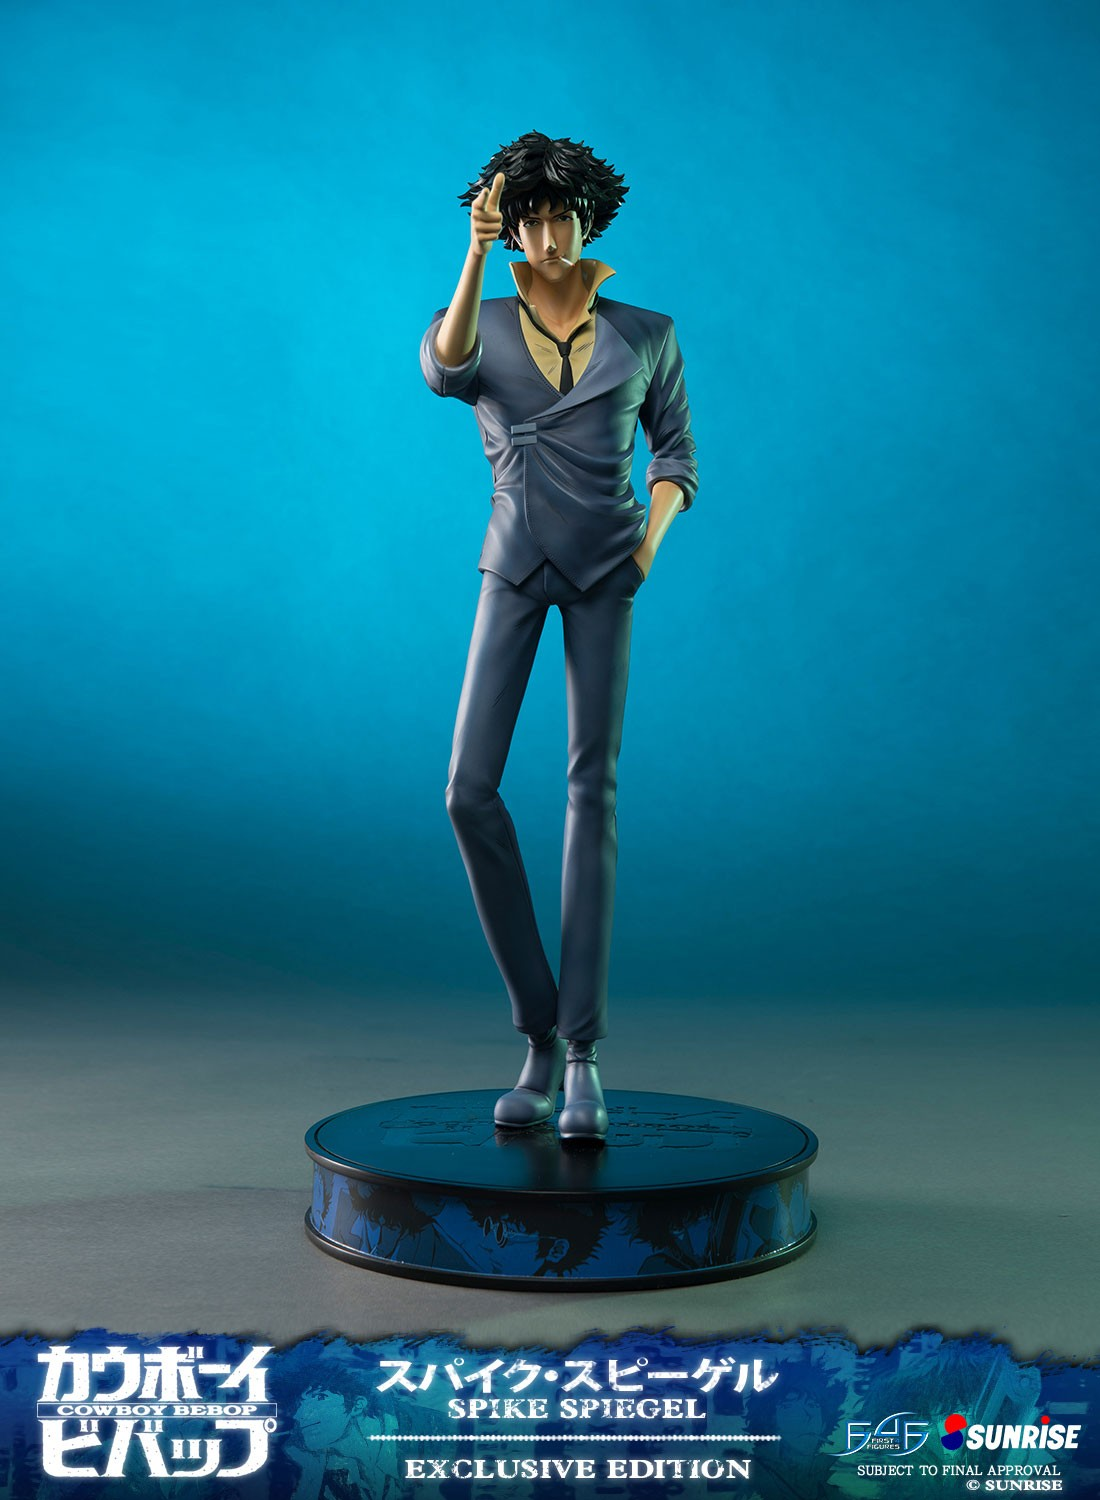 Badspiegel Jolled Spike Spiegel Exclusive